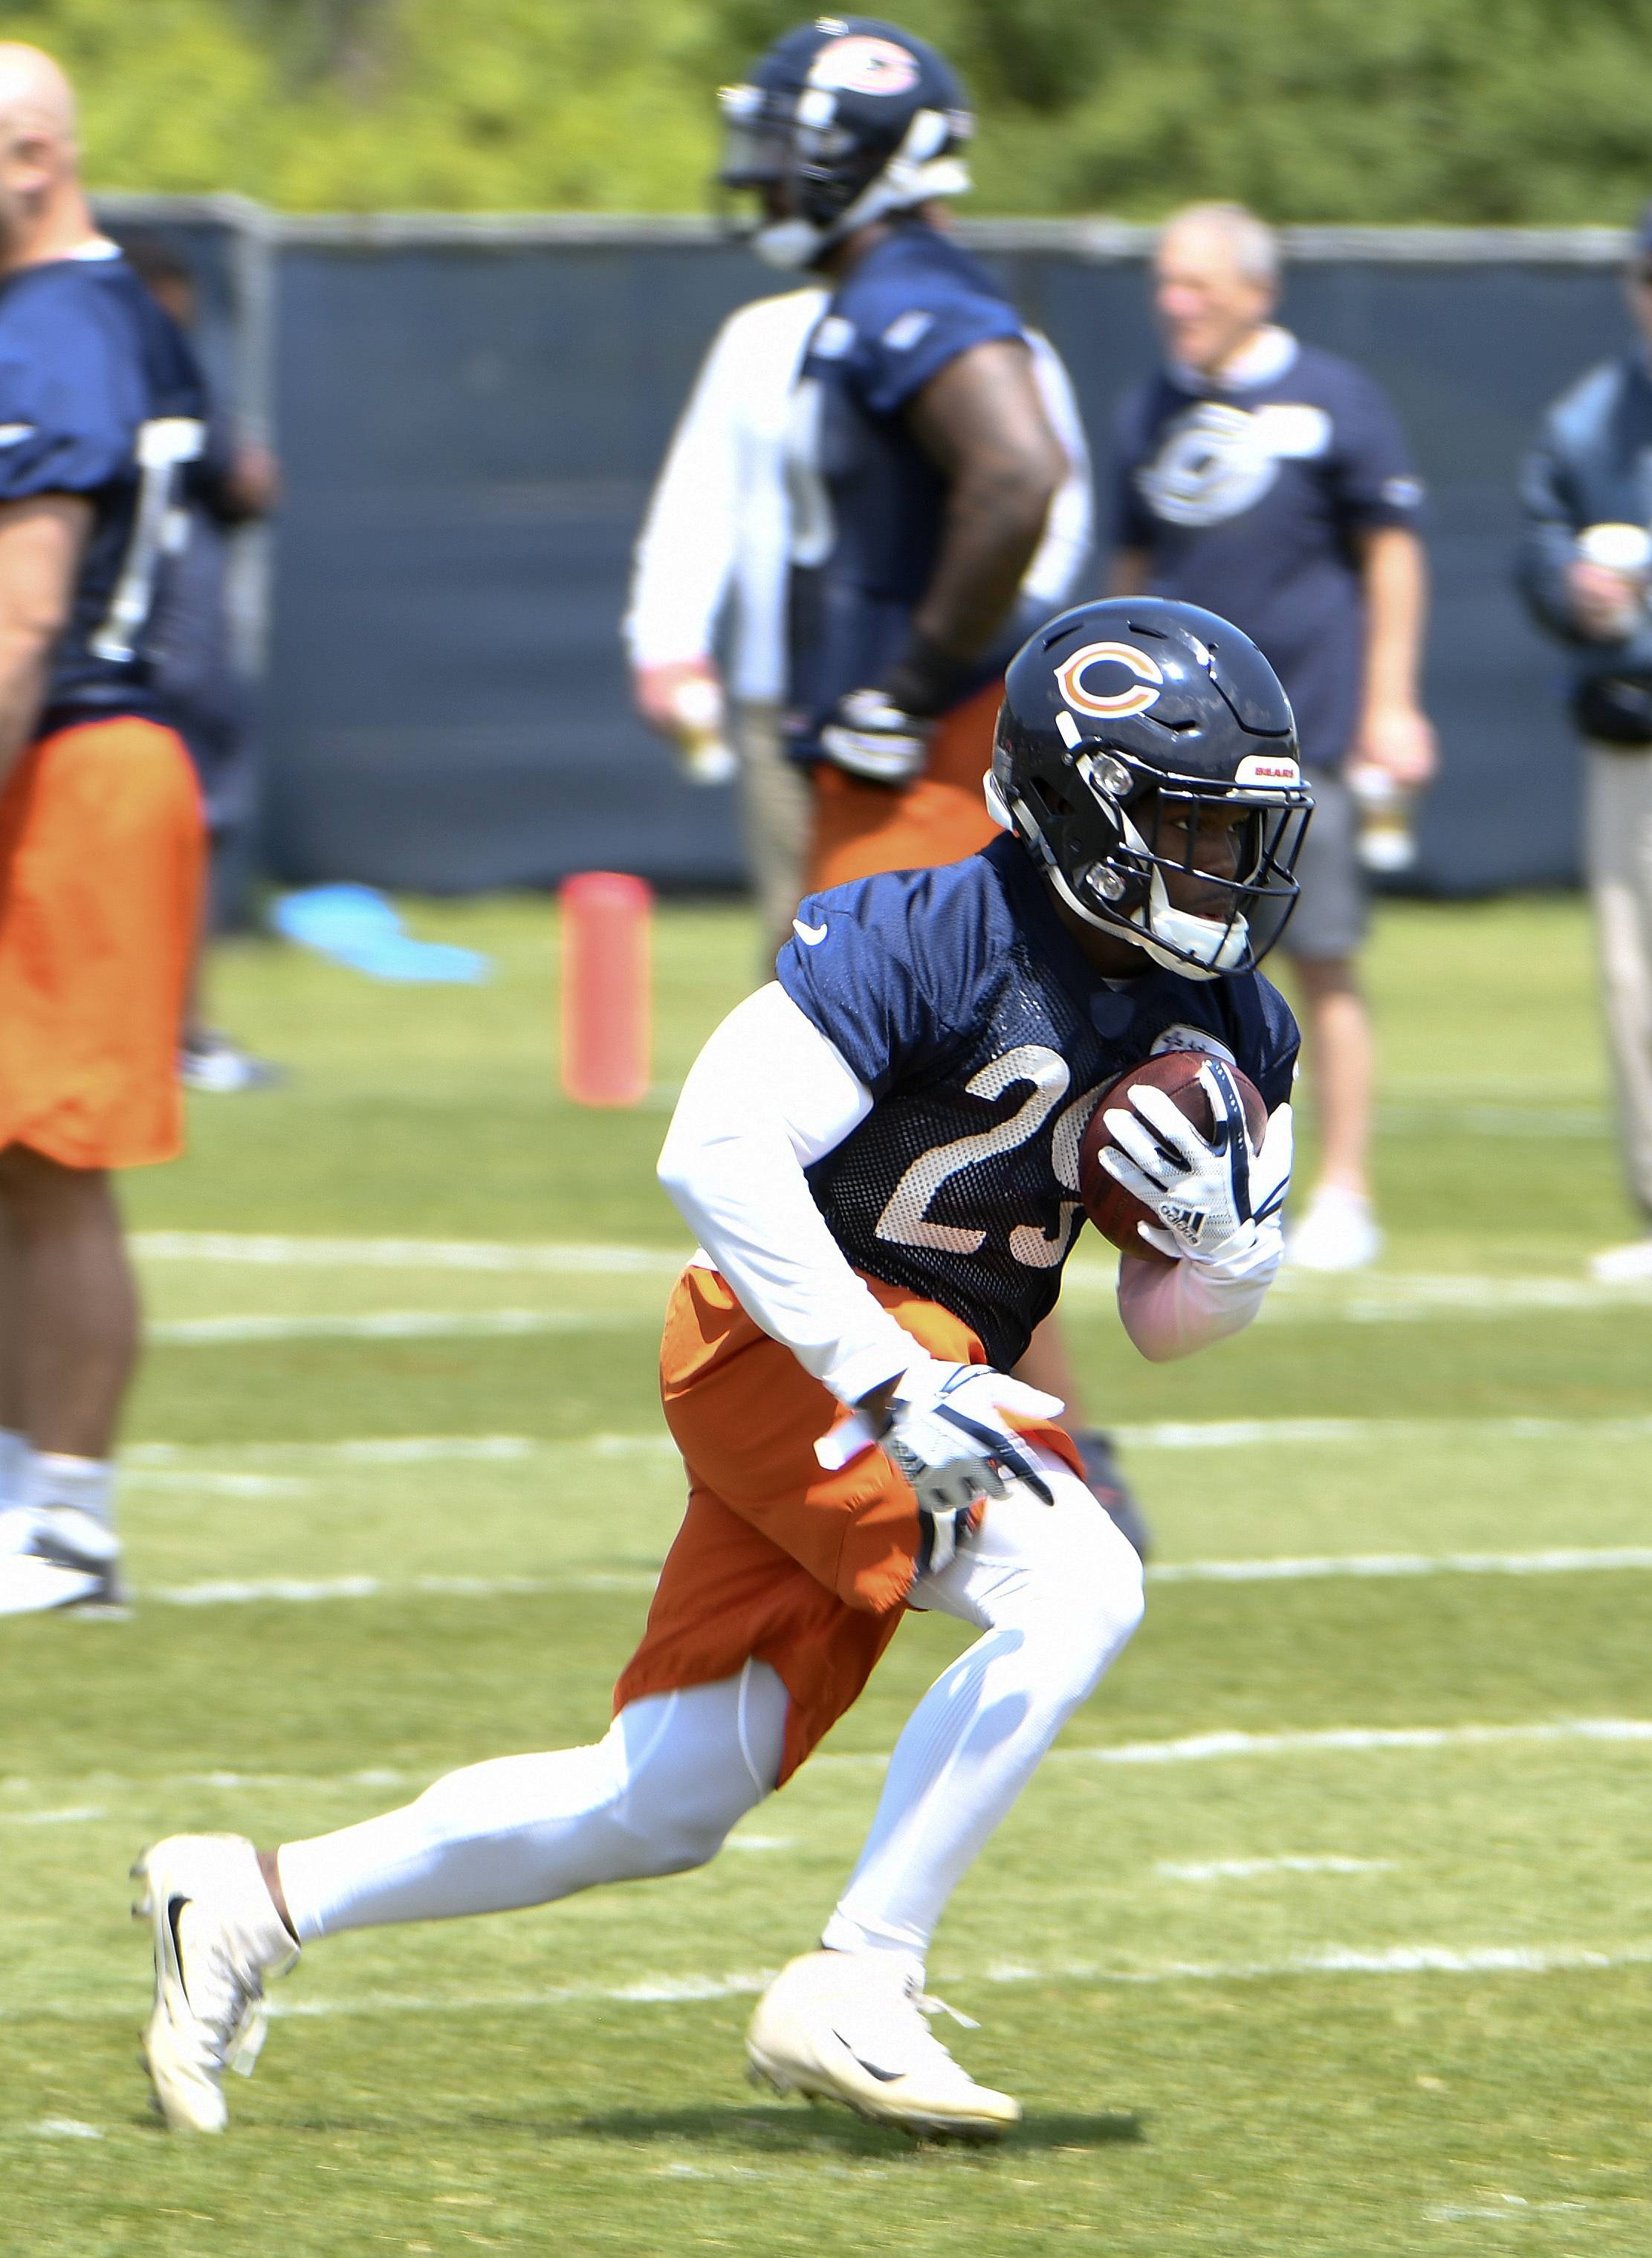 New Bears offense generating buzz on field, in building